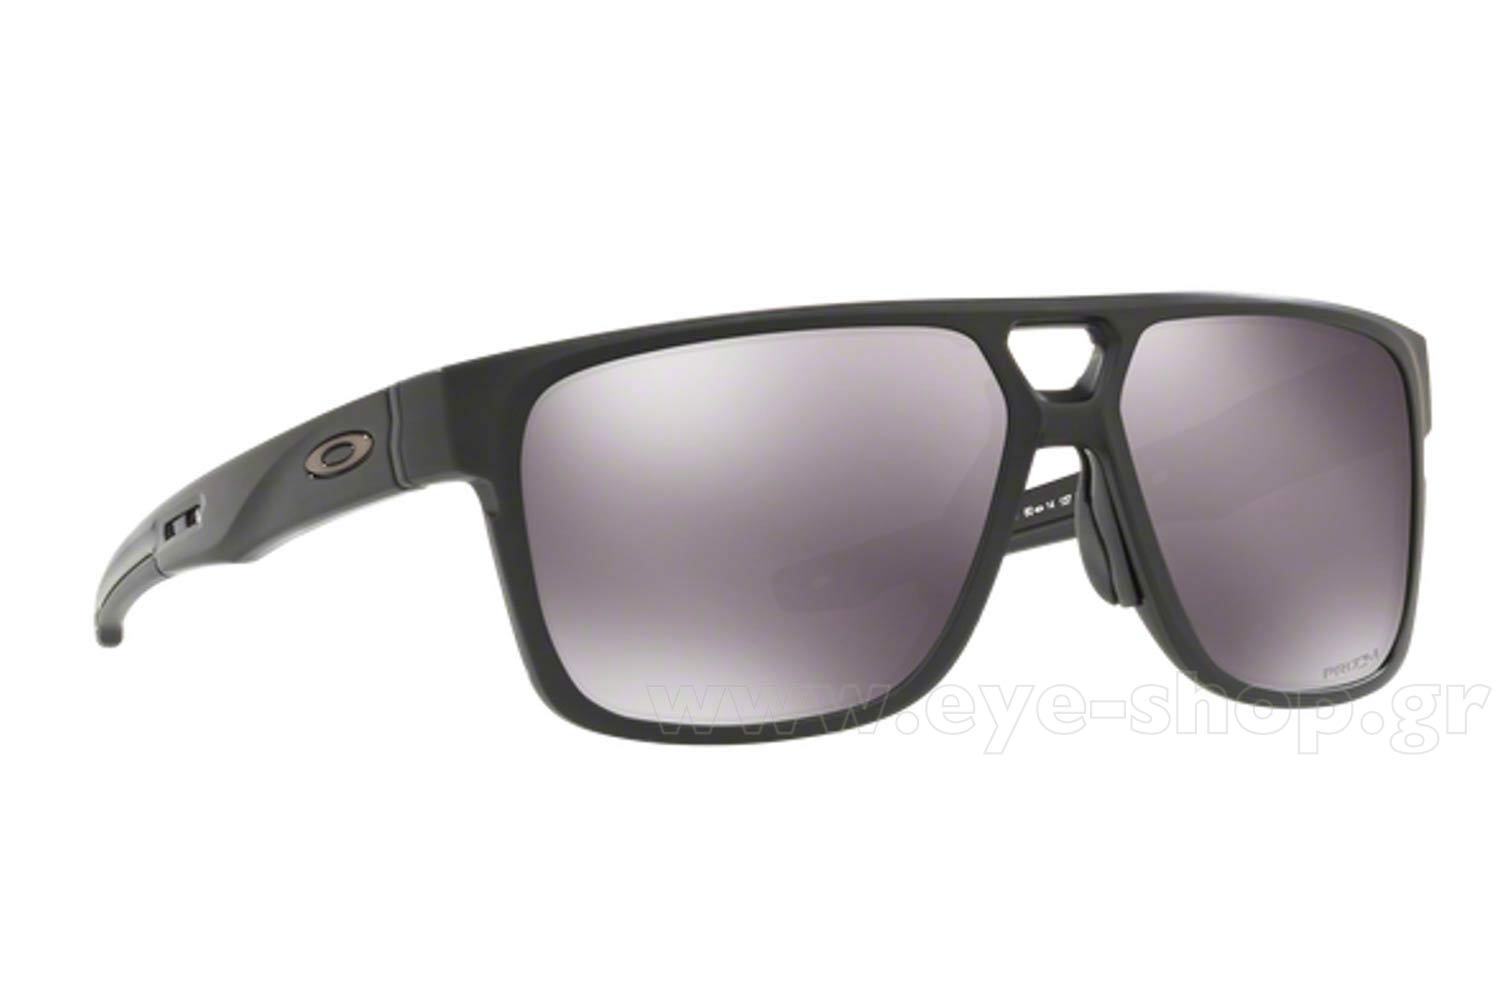 8bf1ba668dd SUNGLASSES Oakley CROSSRANGE PATCH 9382 06